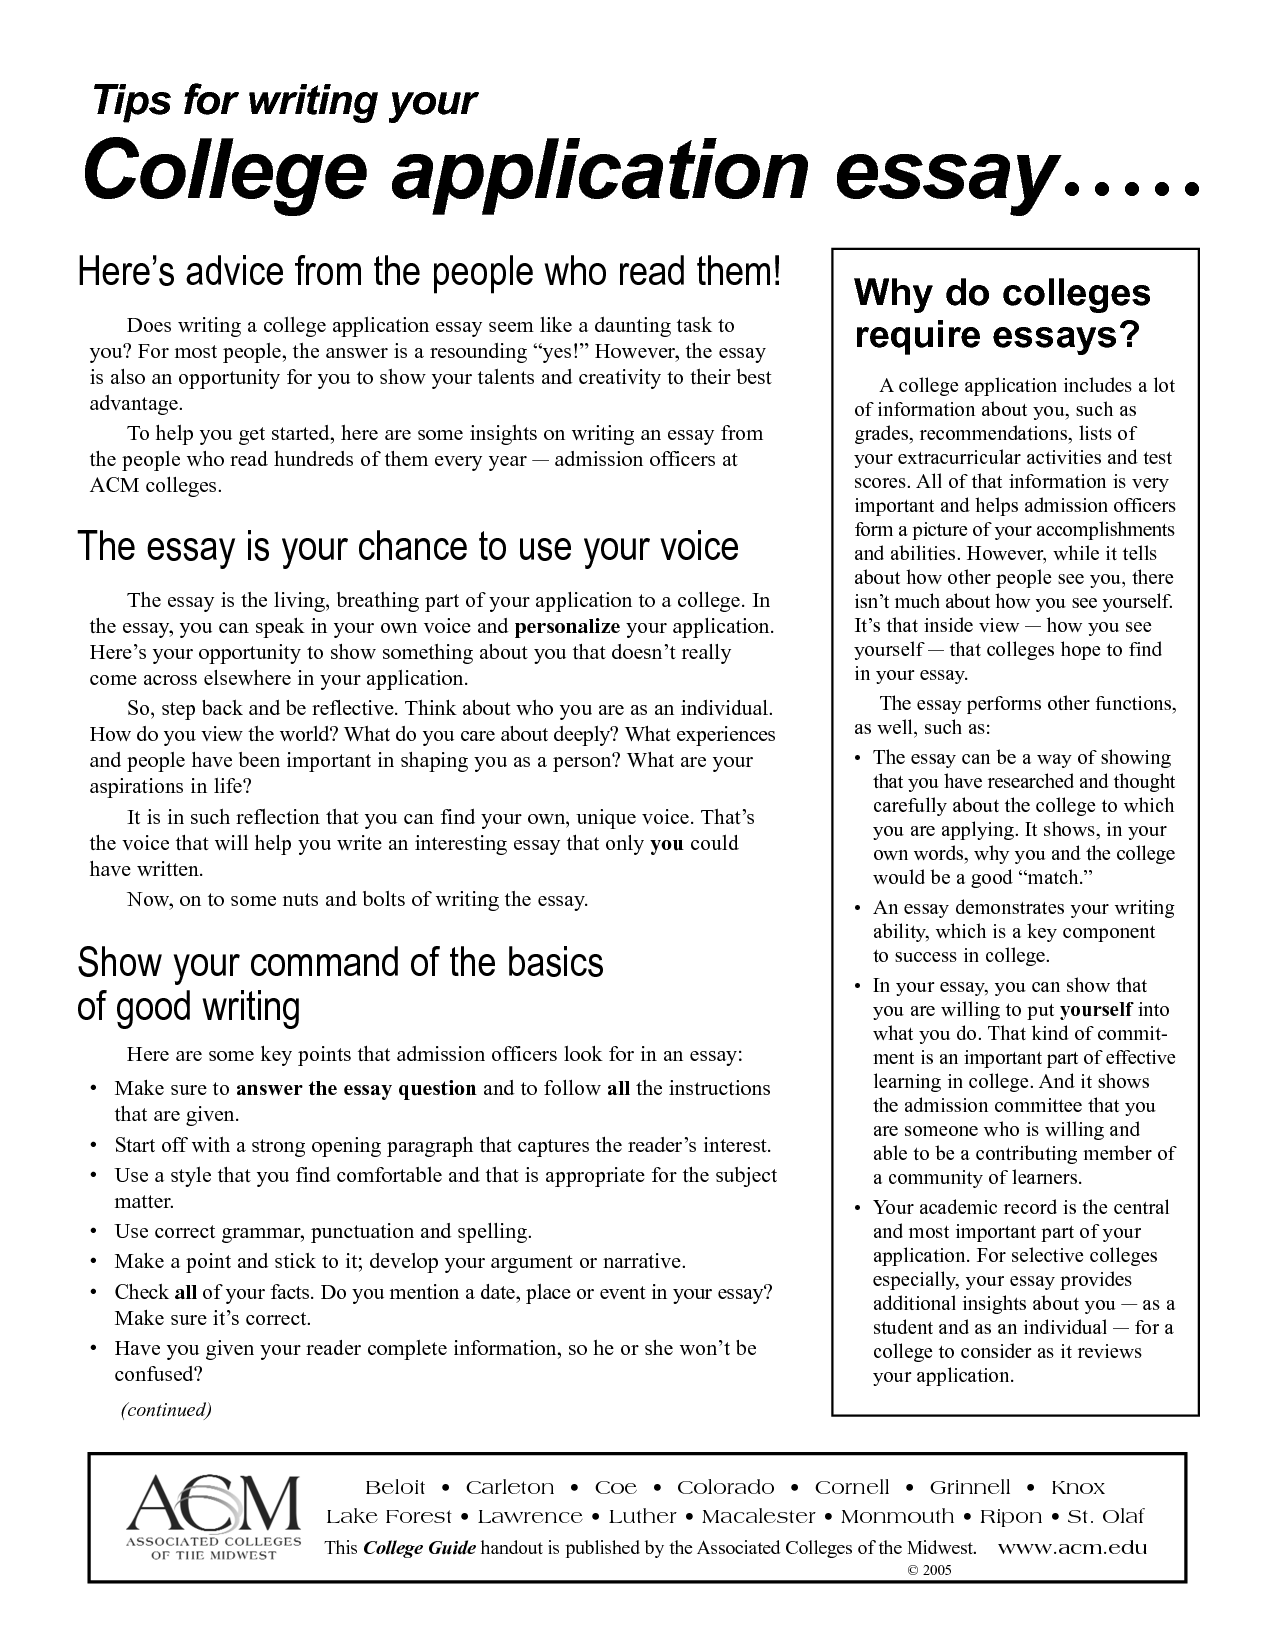 College application essay questions how to start